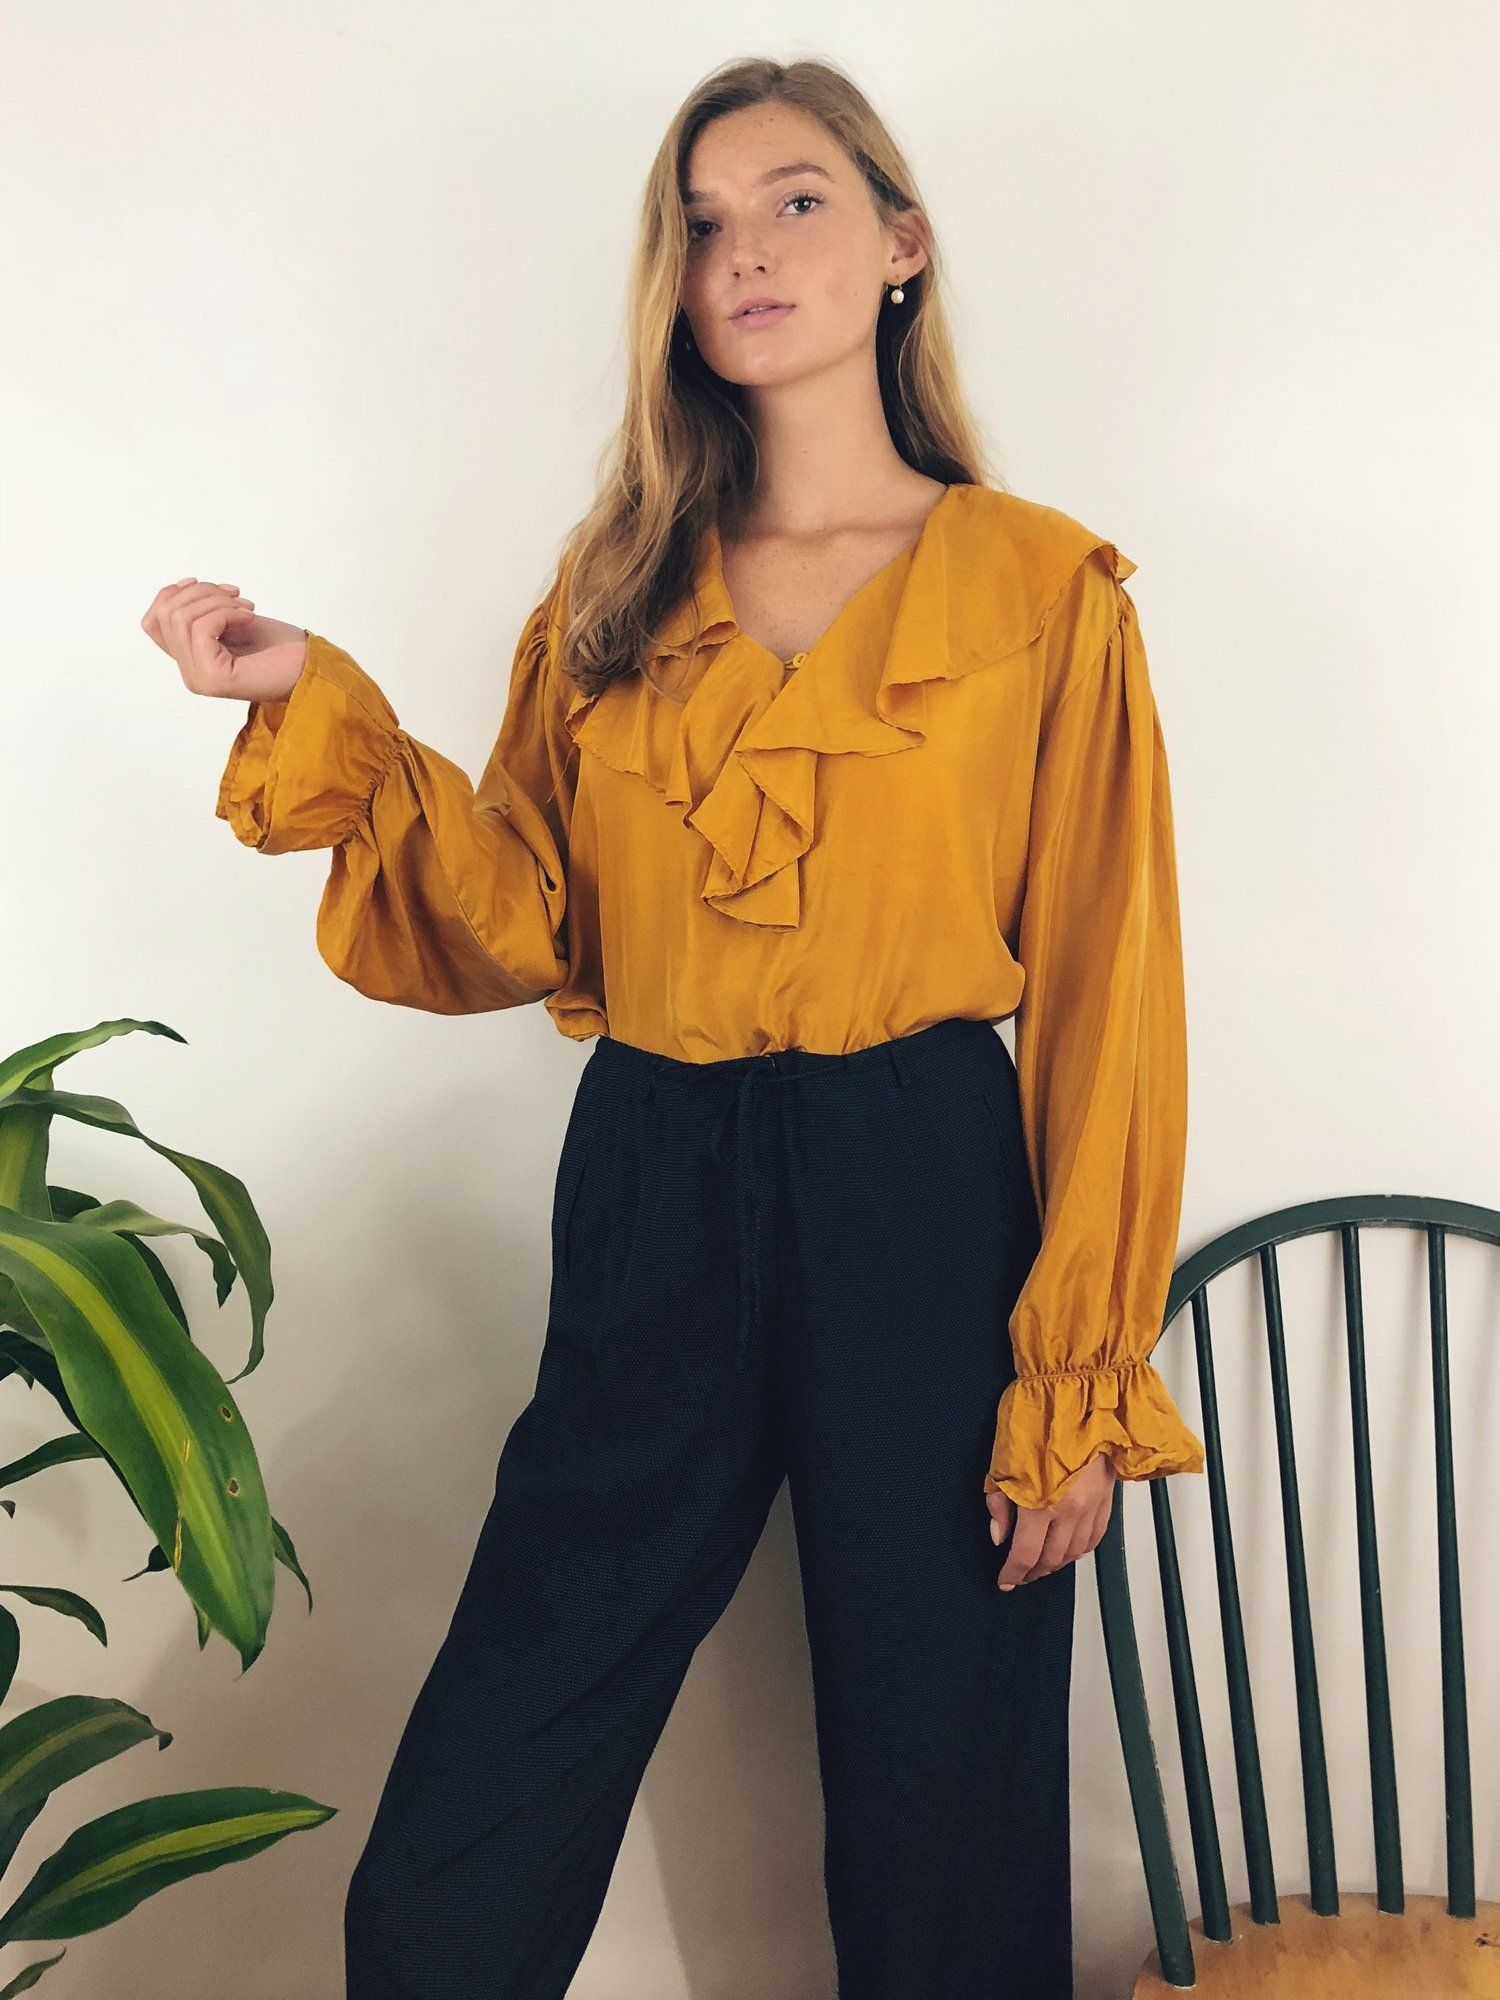 db804b06a638f This silk blouse has been ruffled to perfection in the most glorious shade  of golden yellow